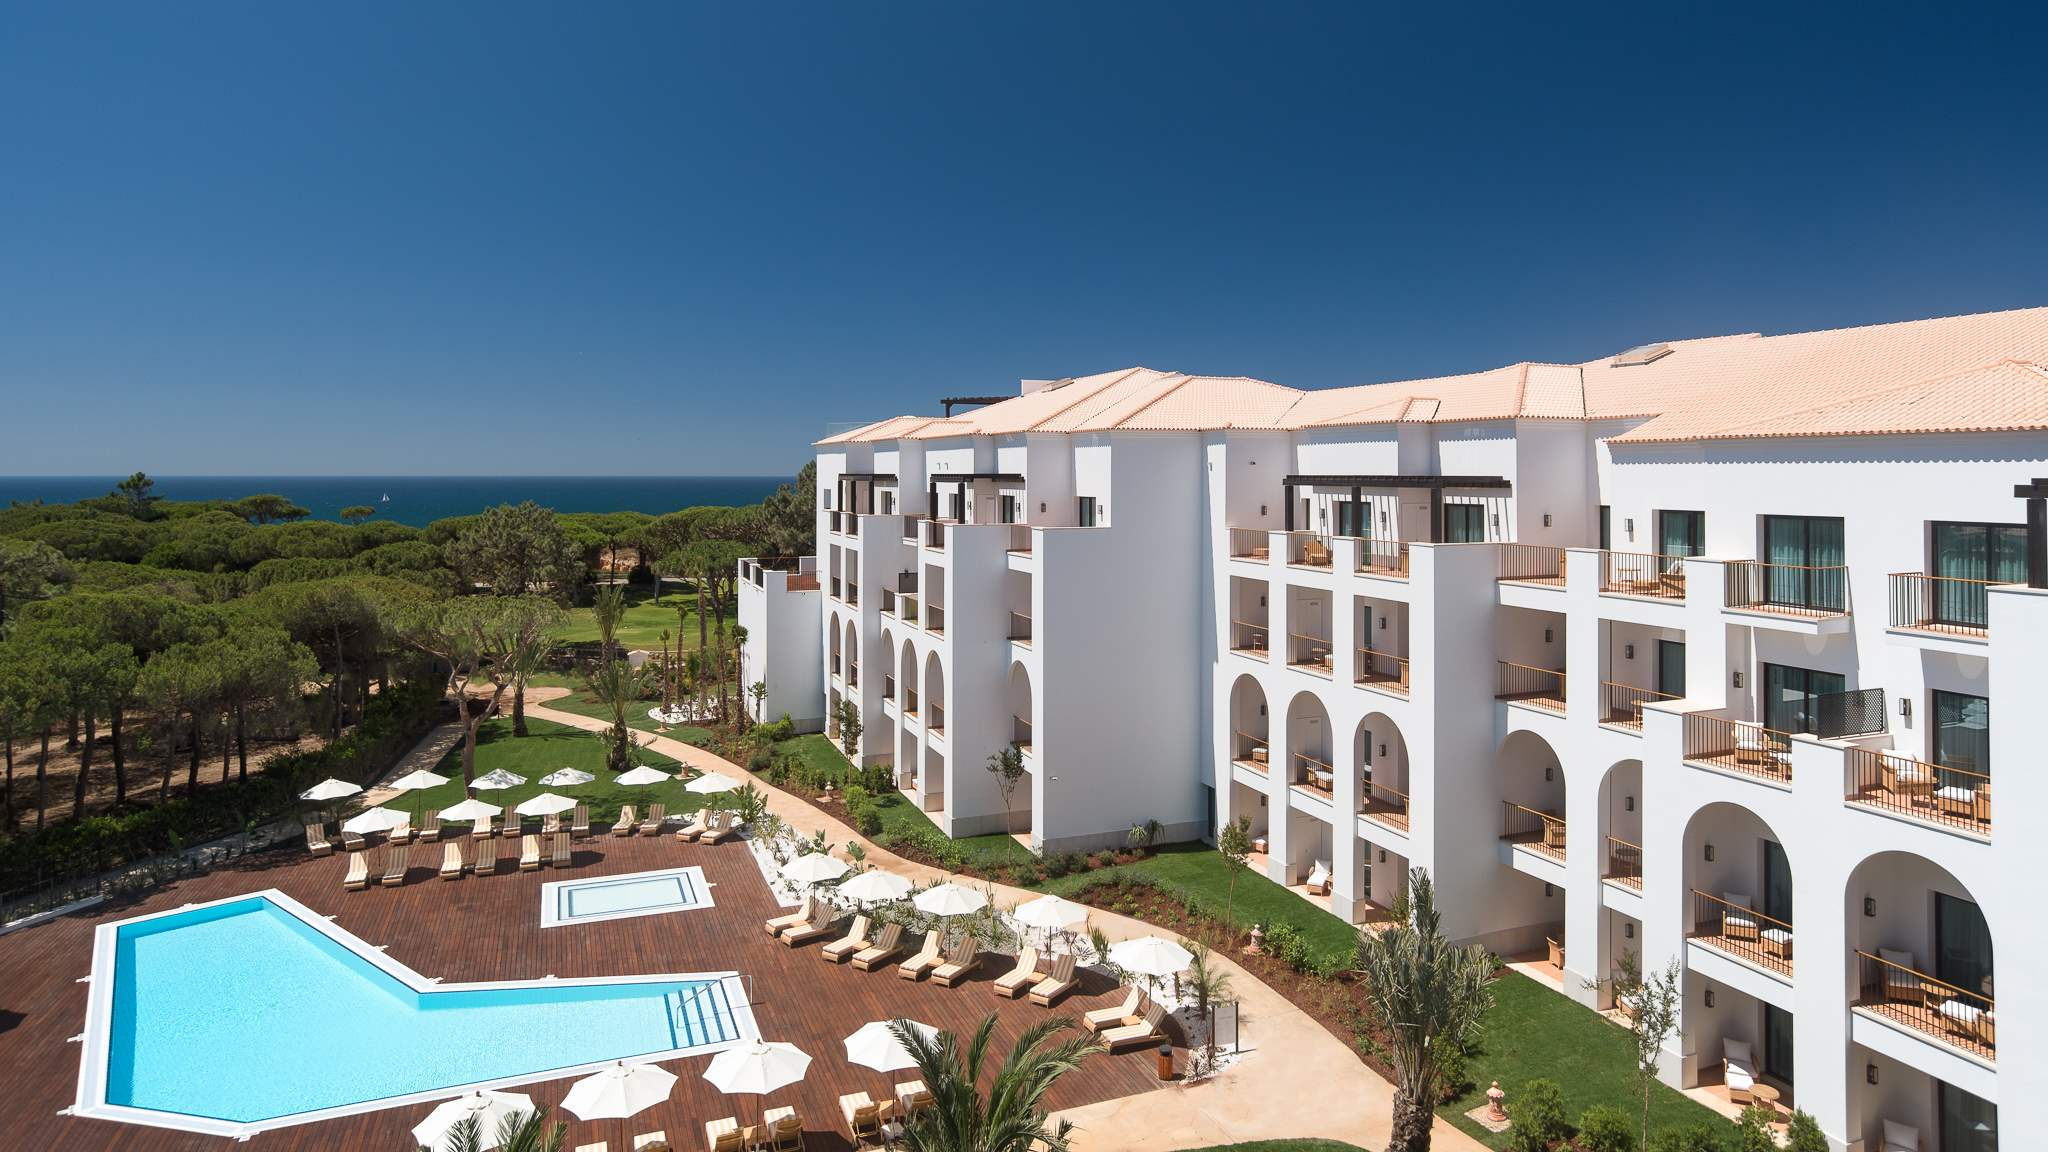 Pine Cliffs Ocean Suites, Two Bedroom Apt, Garden Access, 2 bedroom apartment in Pine Cliffs Resort, Algarve Photo #11